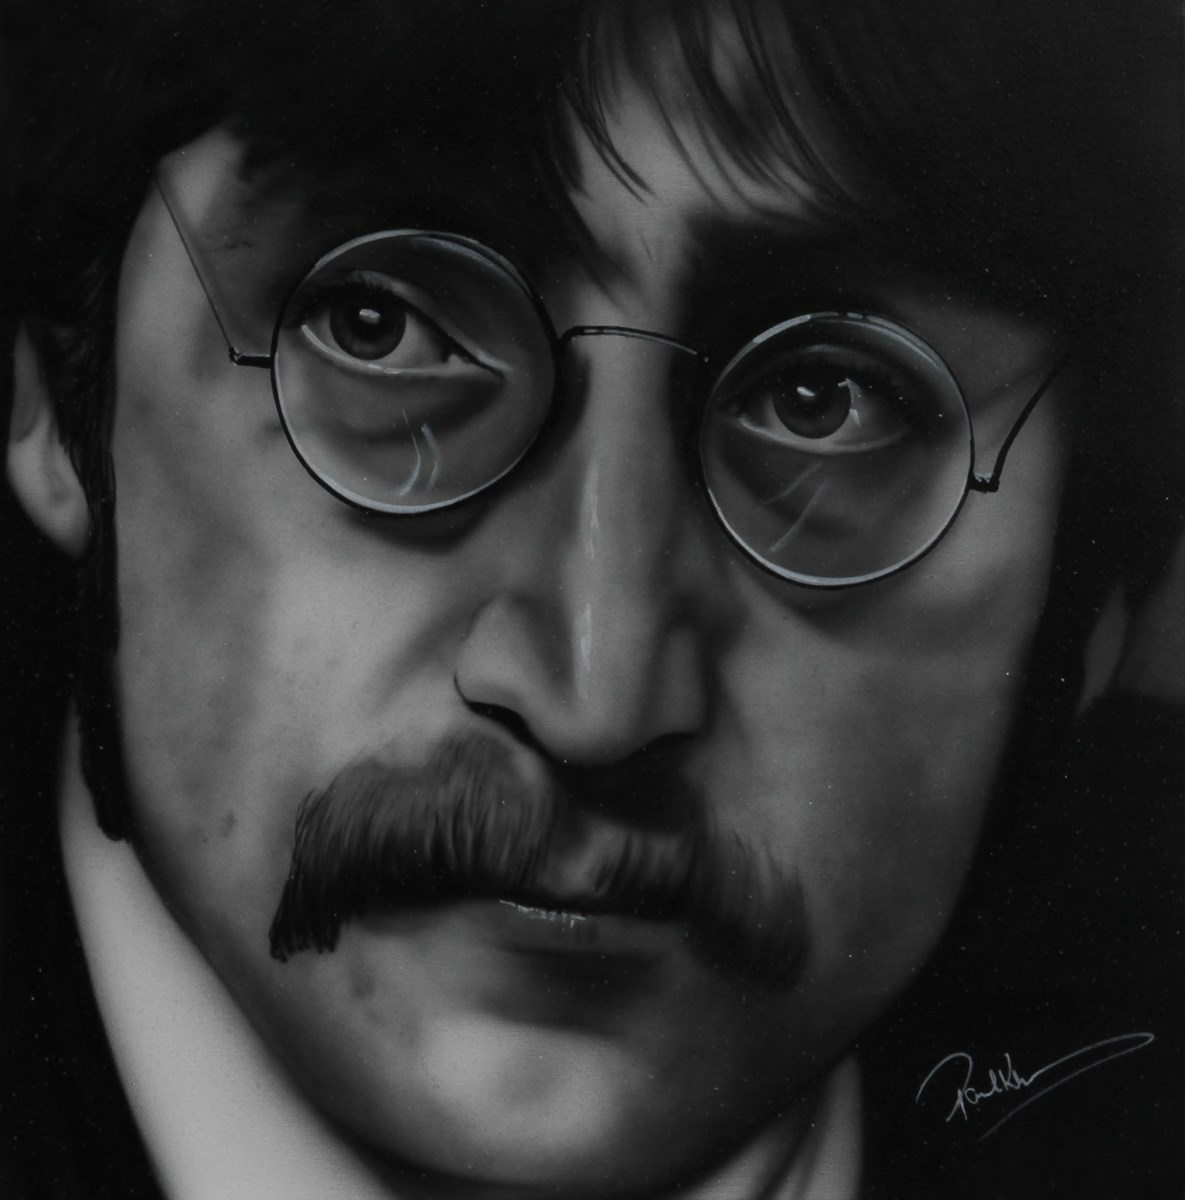 John Lennon III by paul karslake - Orig Monochrome Airbrush W/Diamond Dust on Canvas sized 26x26 inches. Available from Whitewall Galleries